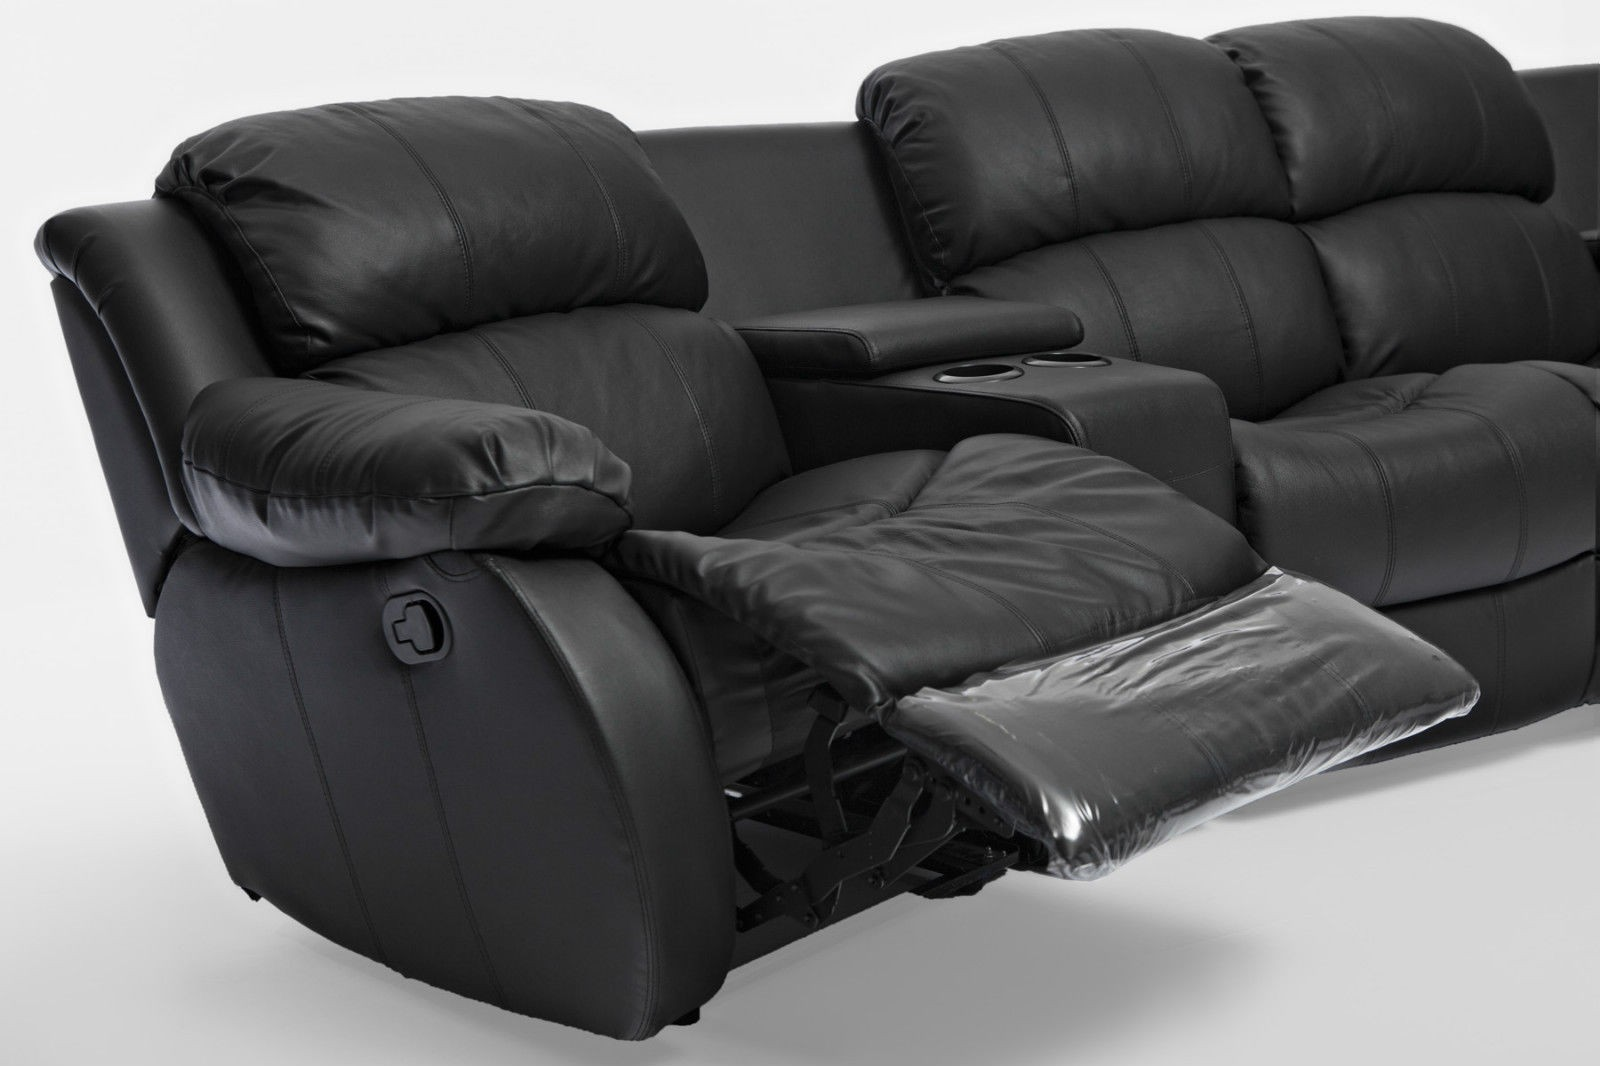 Nikki Black Leather 4 Seater Home Theatre Lounge Suite 4